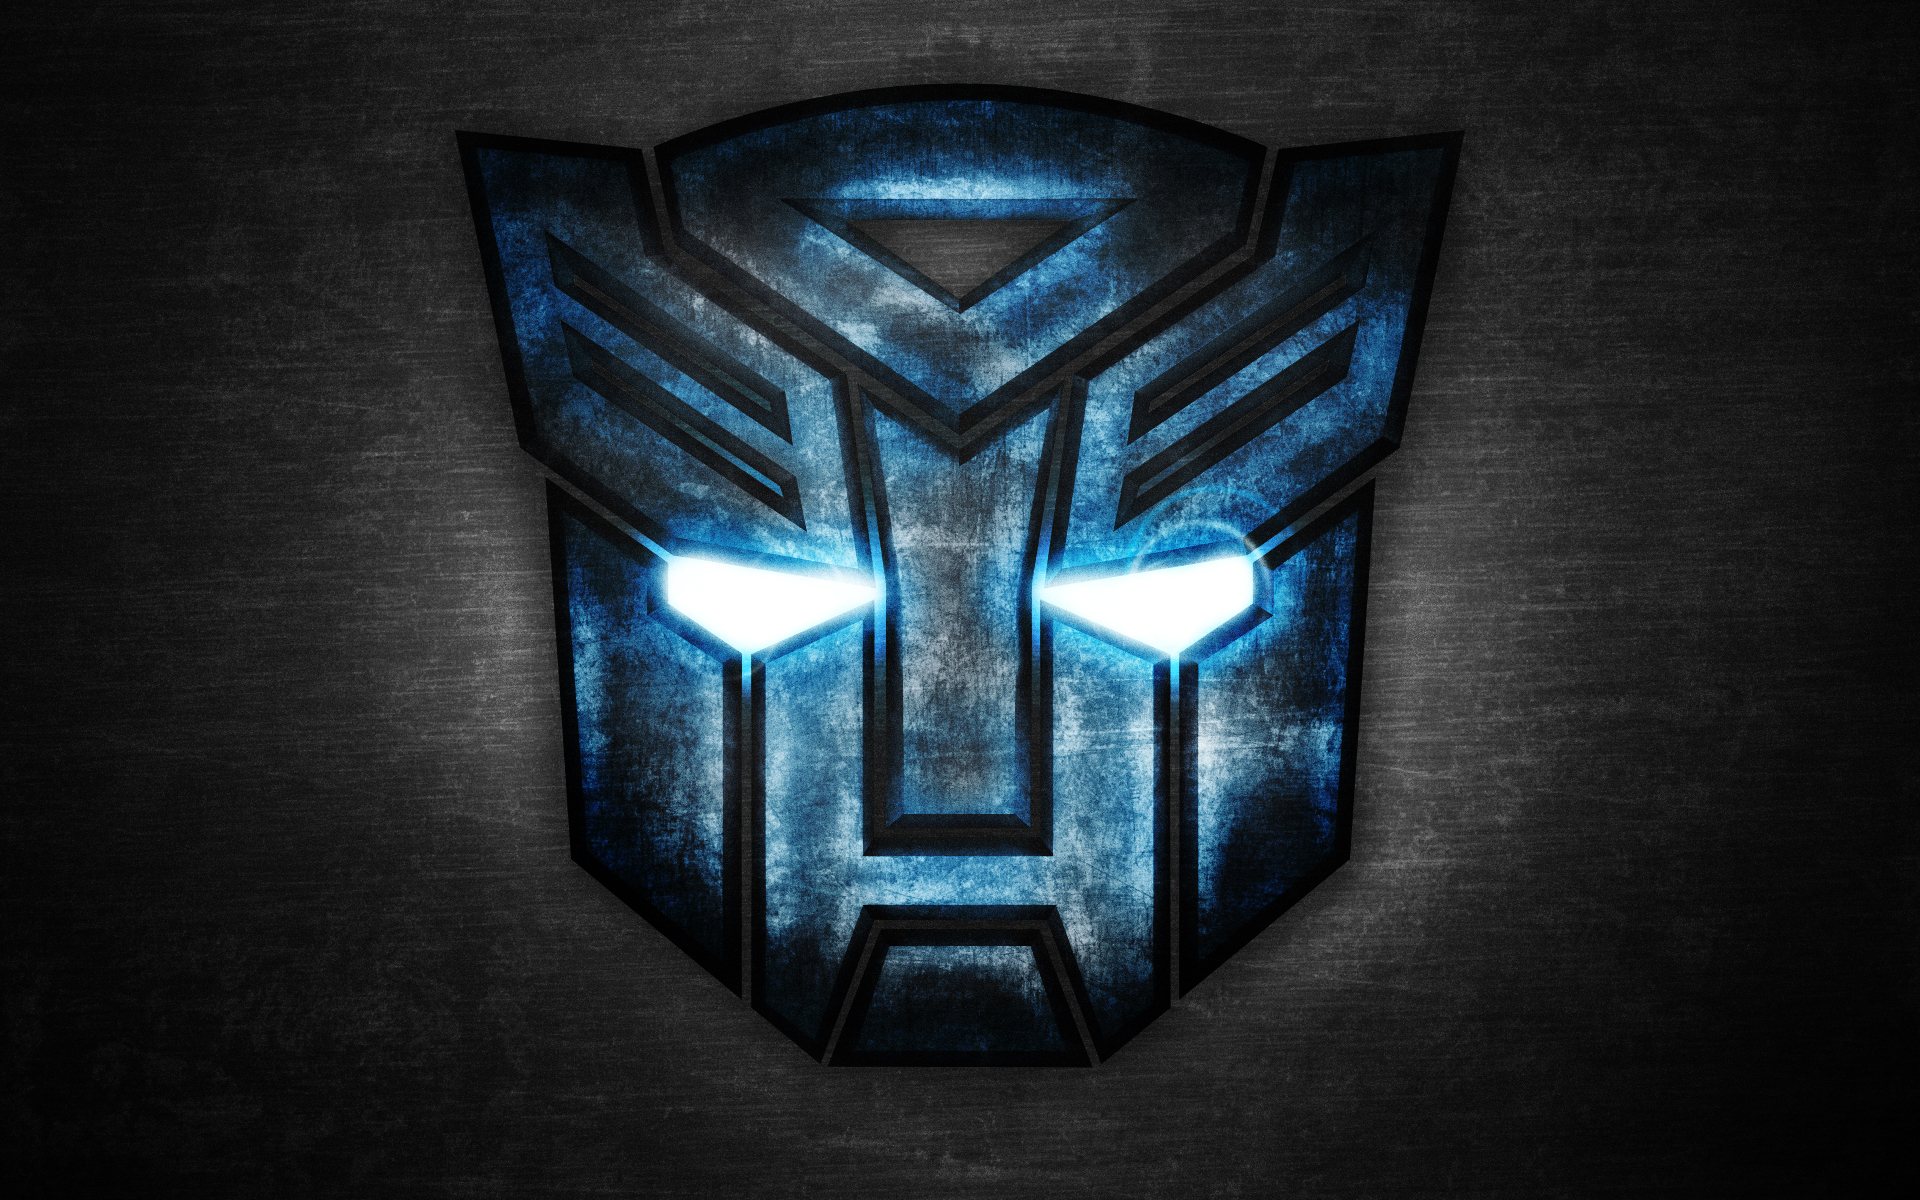 HD Transformers Wallpapers amp Backgrounds For Download 1920x1200